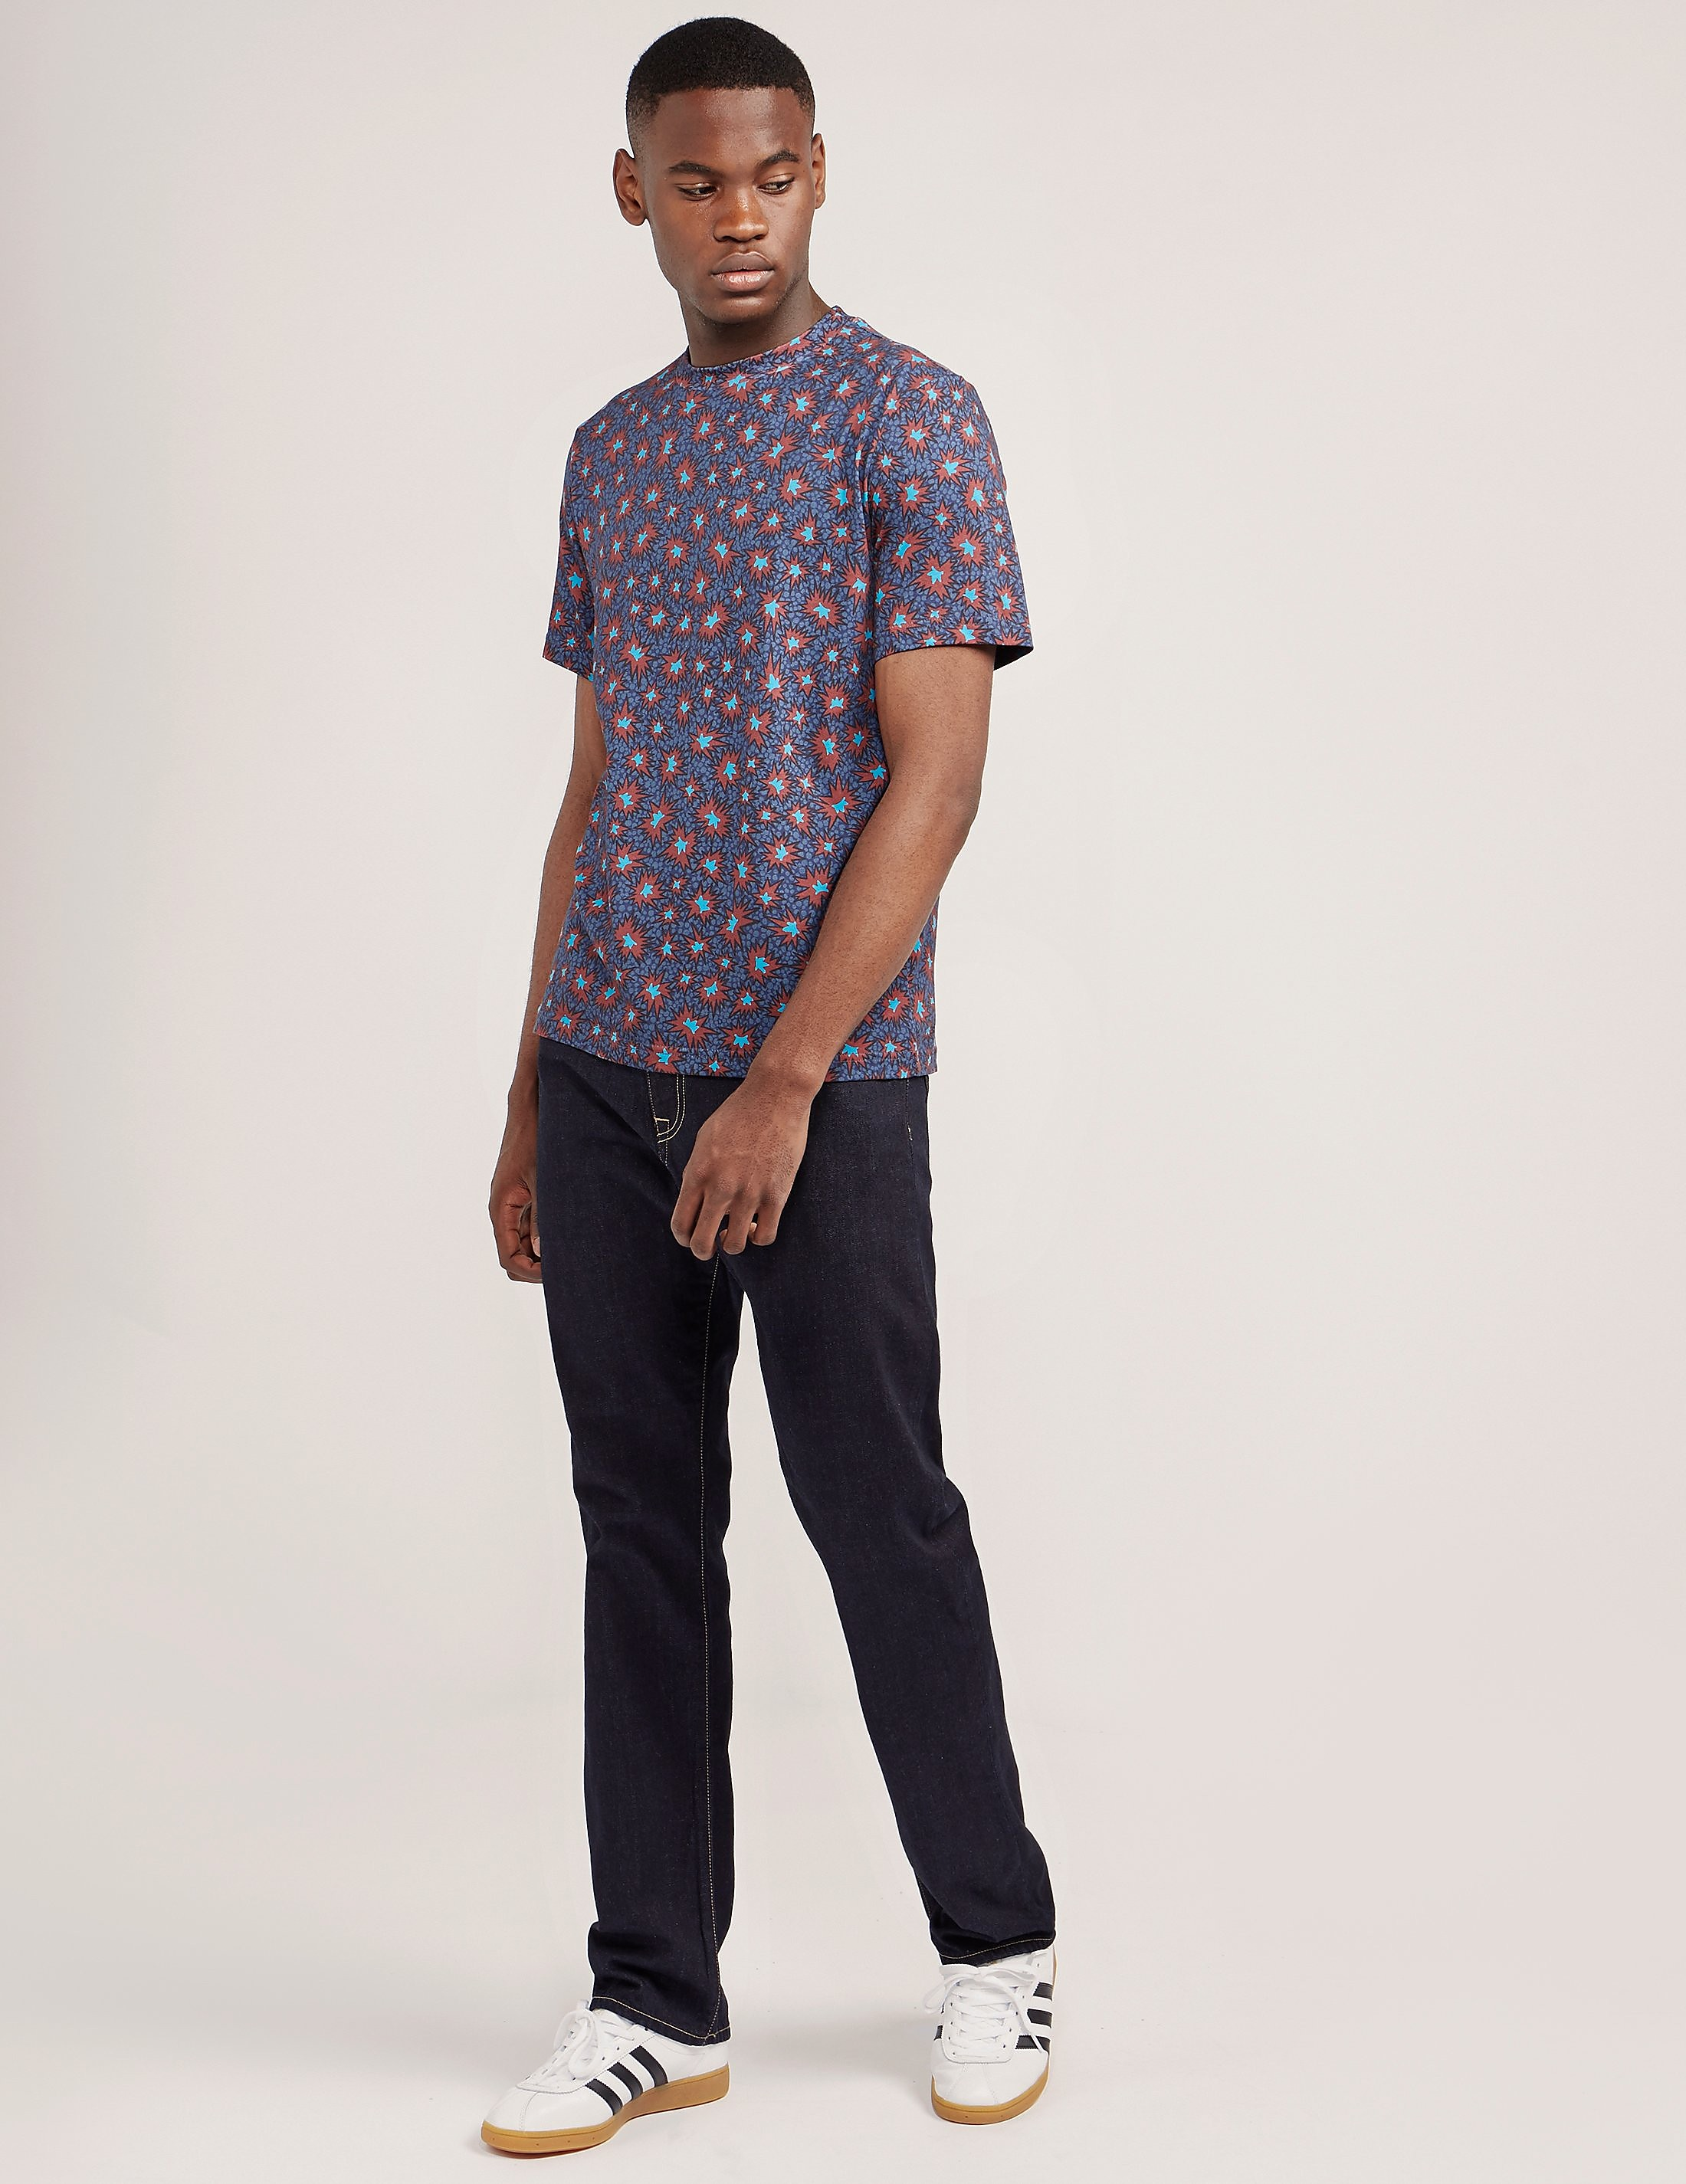 Paul Smith Starburst Print Short Sleeve T-Shirt